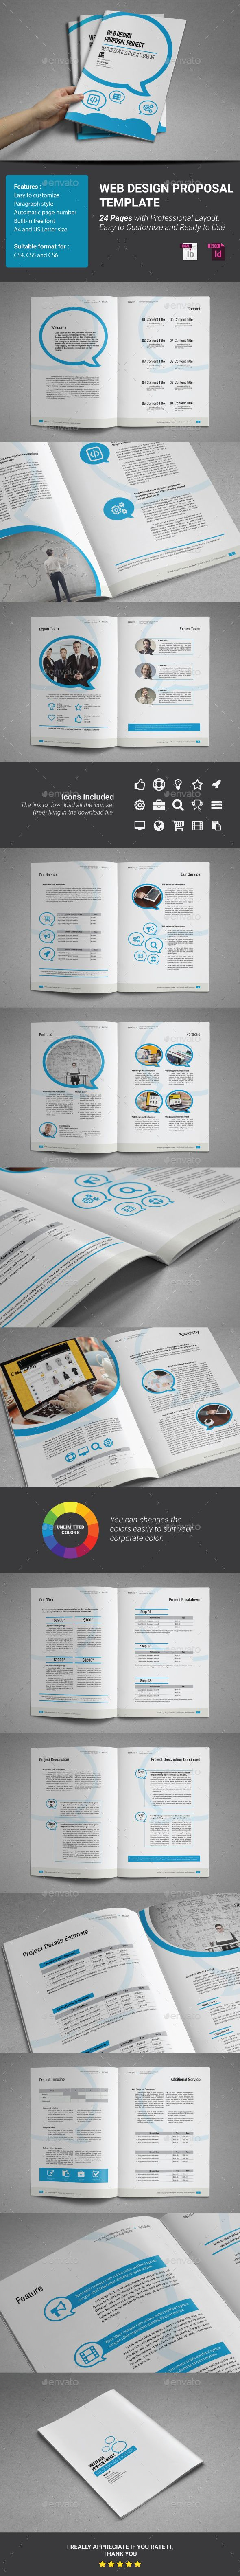 Web Design Proposal Template indesign indd document